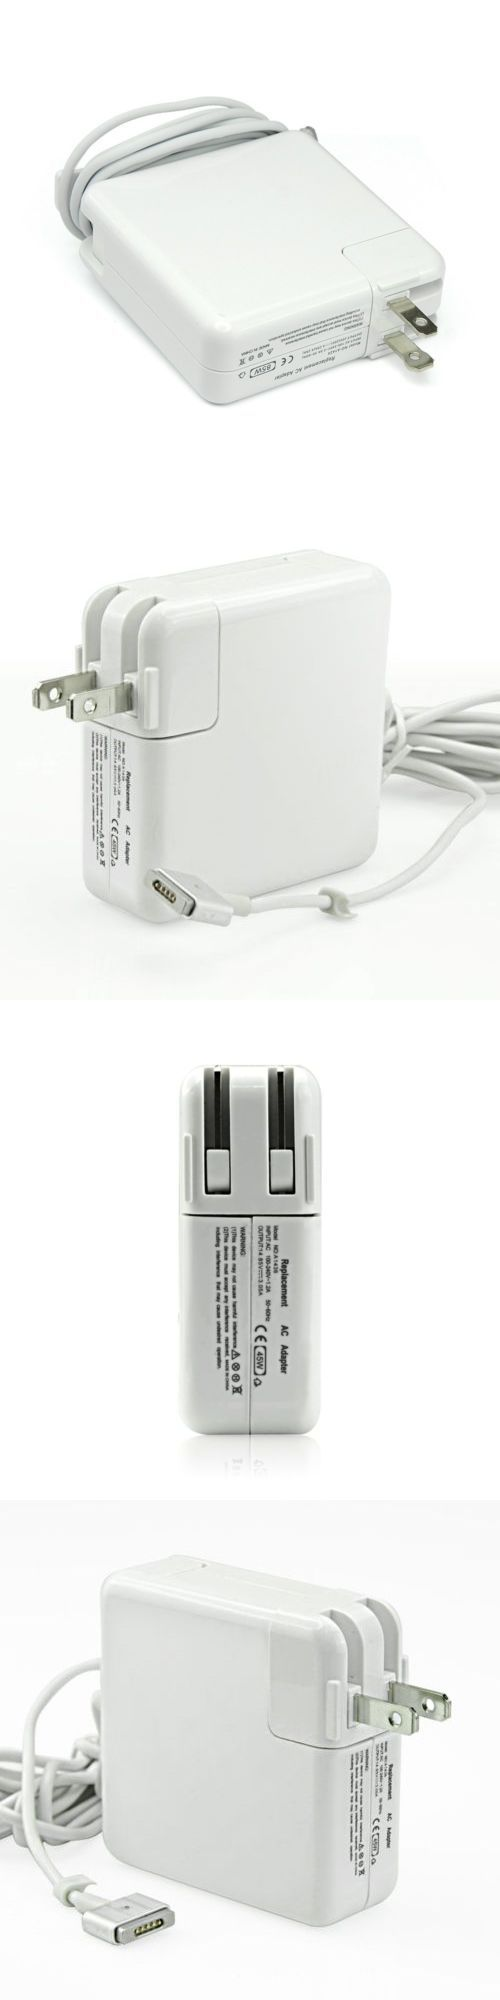 45w Power Adapter Charger For Apple Macbook Air 11 13 2012 2013 2014 2015 2016 Apple Macbook Air Macbook Air 11 Macbook